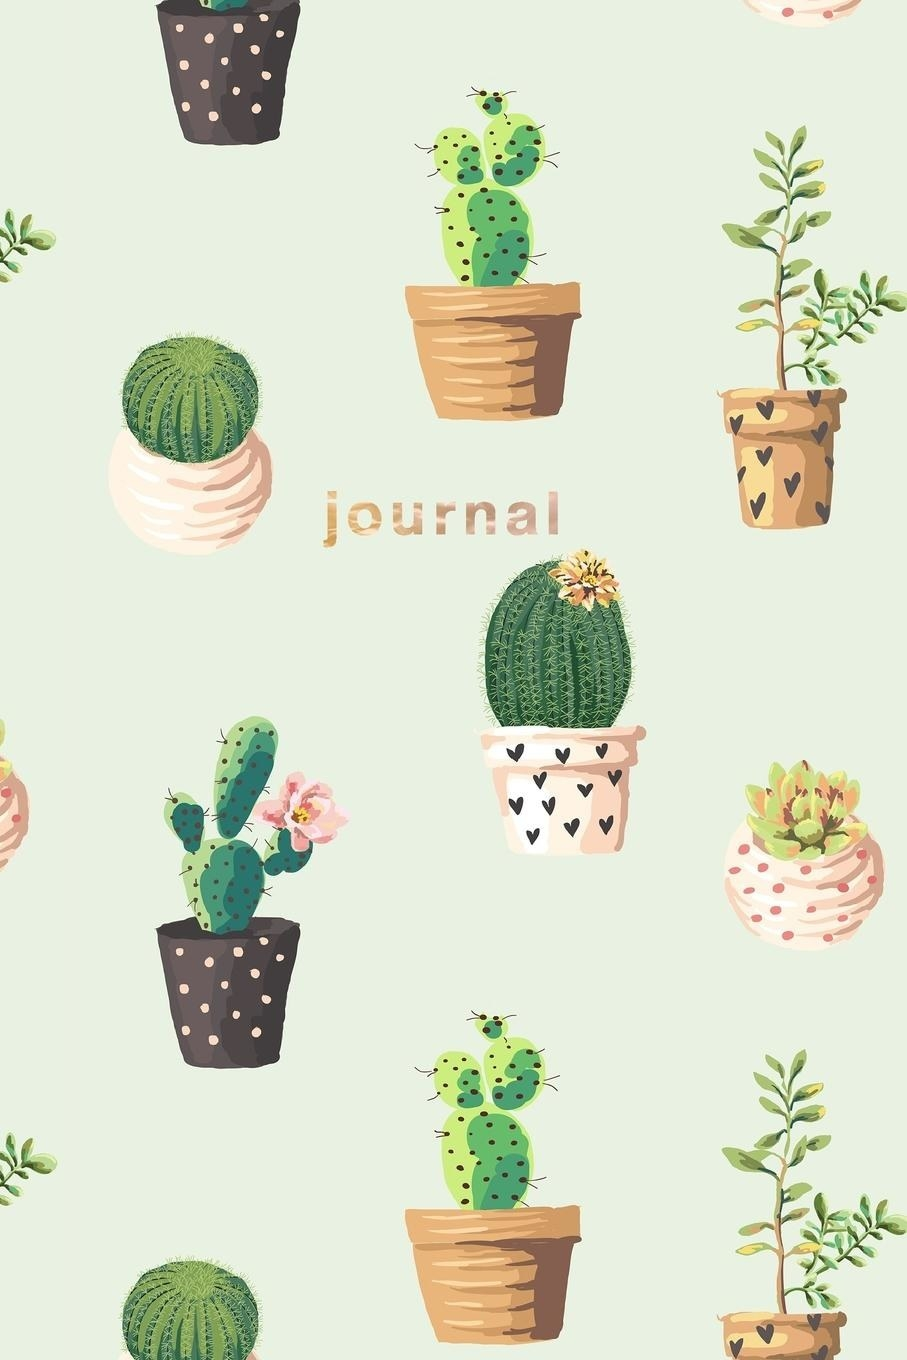 A journal adorned with drawings of various different types of cactii